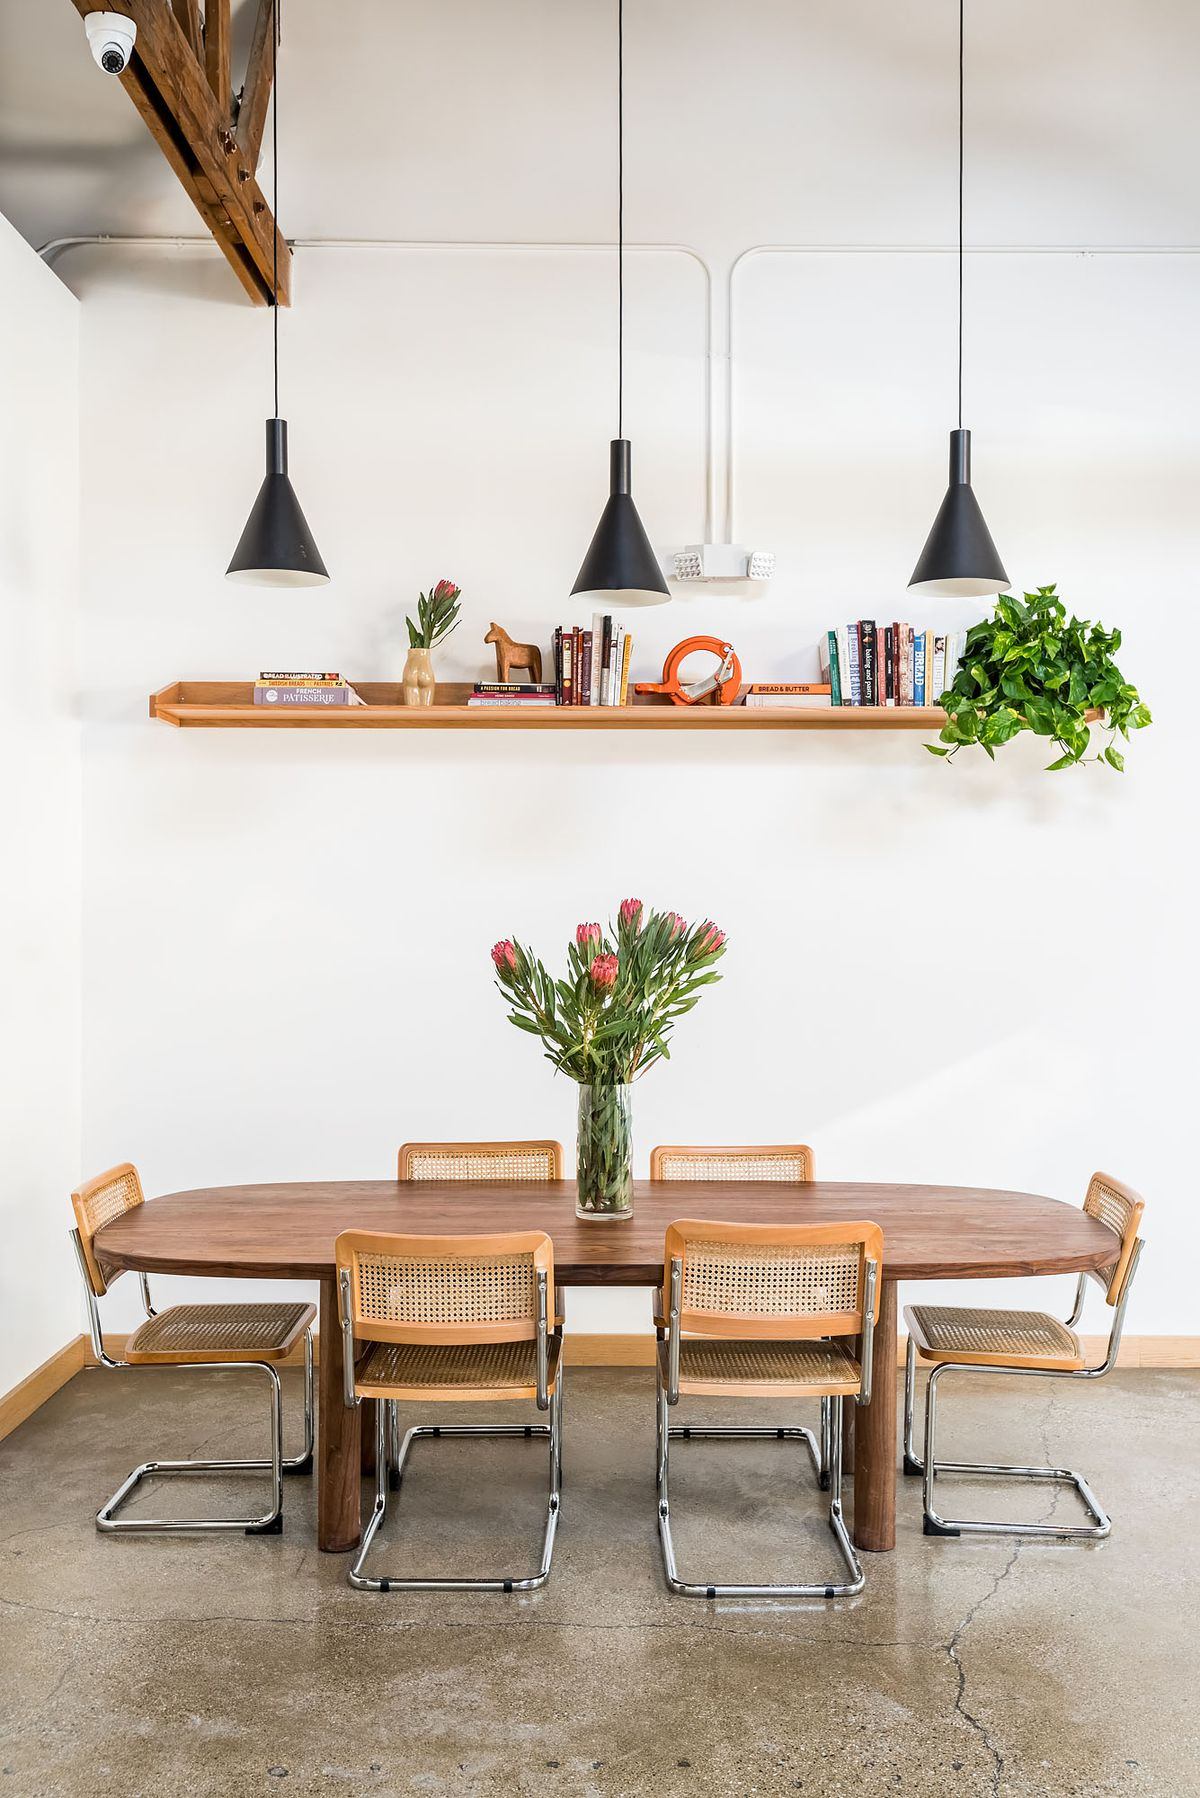 A communal wooden table in a white room restaurant.